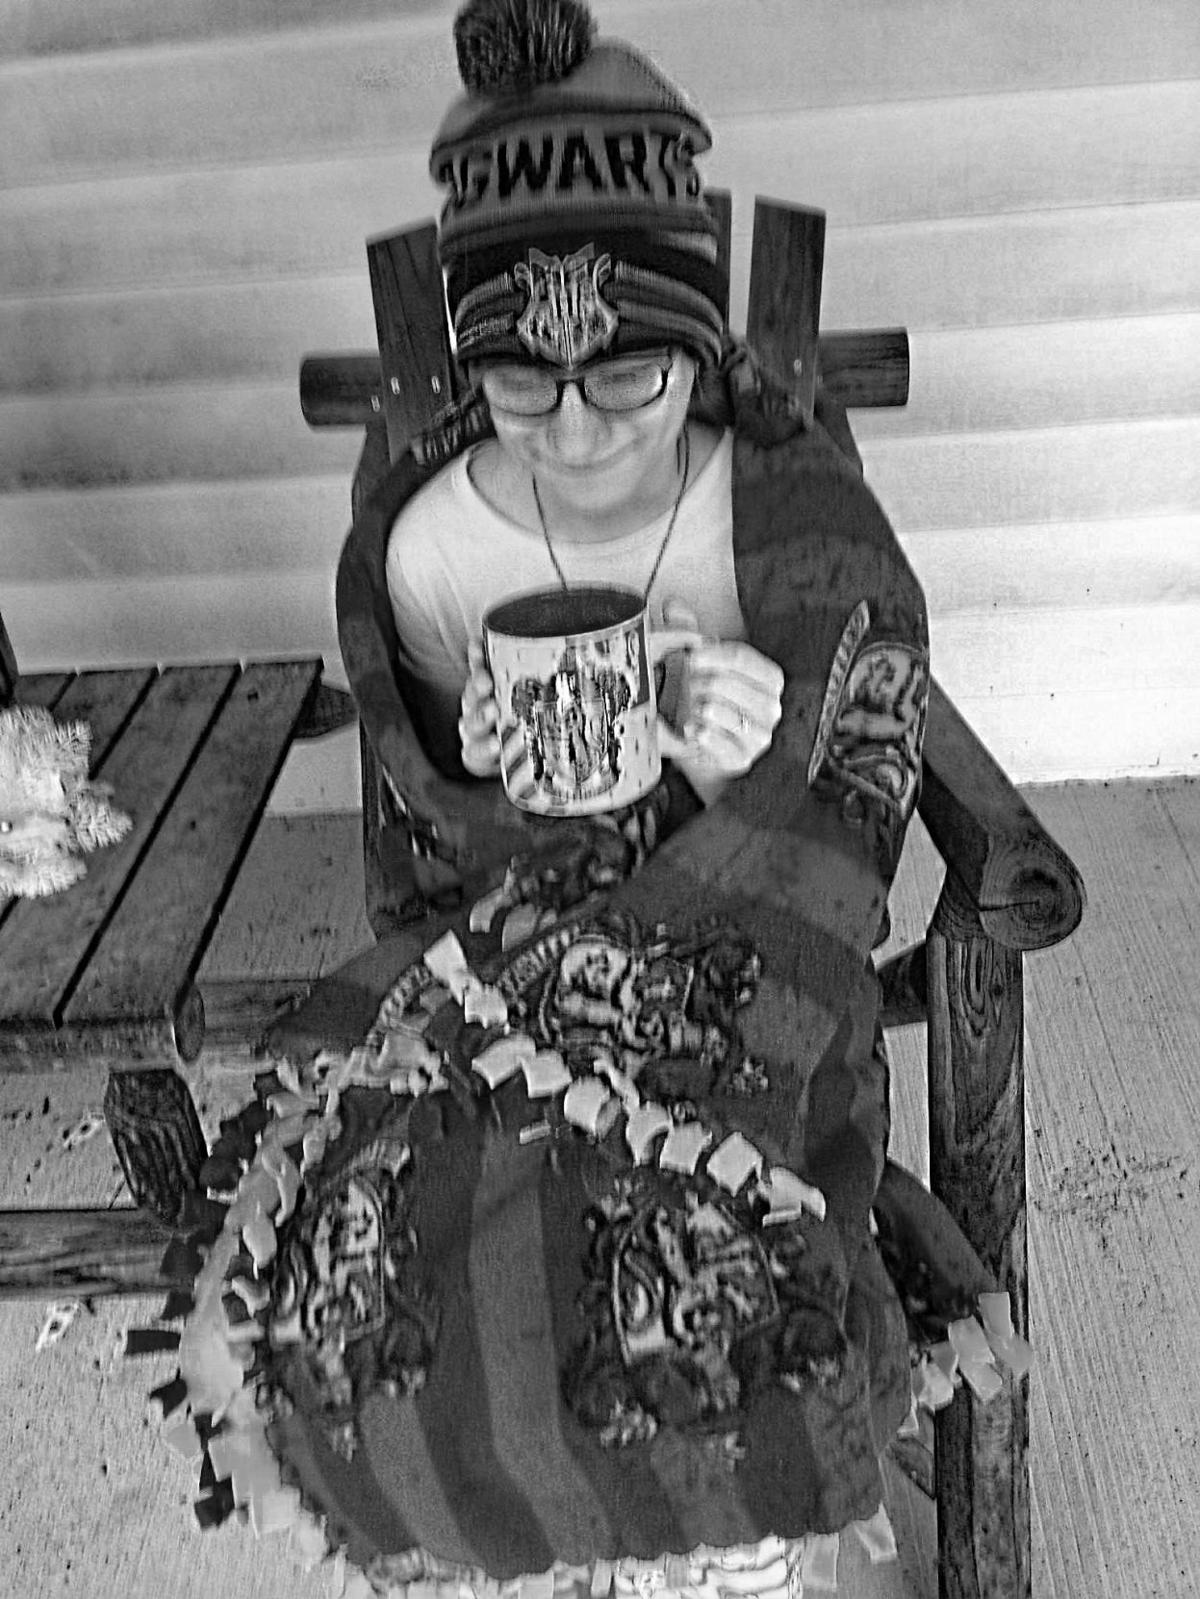 Girl scouts announce new patch news indianagazette rena shotts 13 of marion center enjoyed a warm cup of hot chocolate on her front porch as part of the girl scouts western pennsylvania get outdoors publicscrutiny Gallery